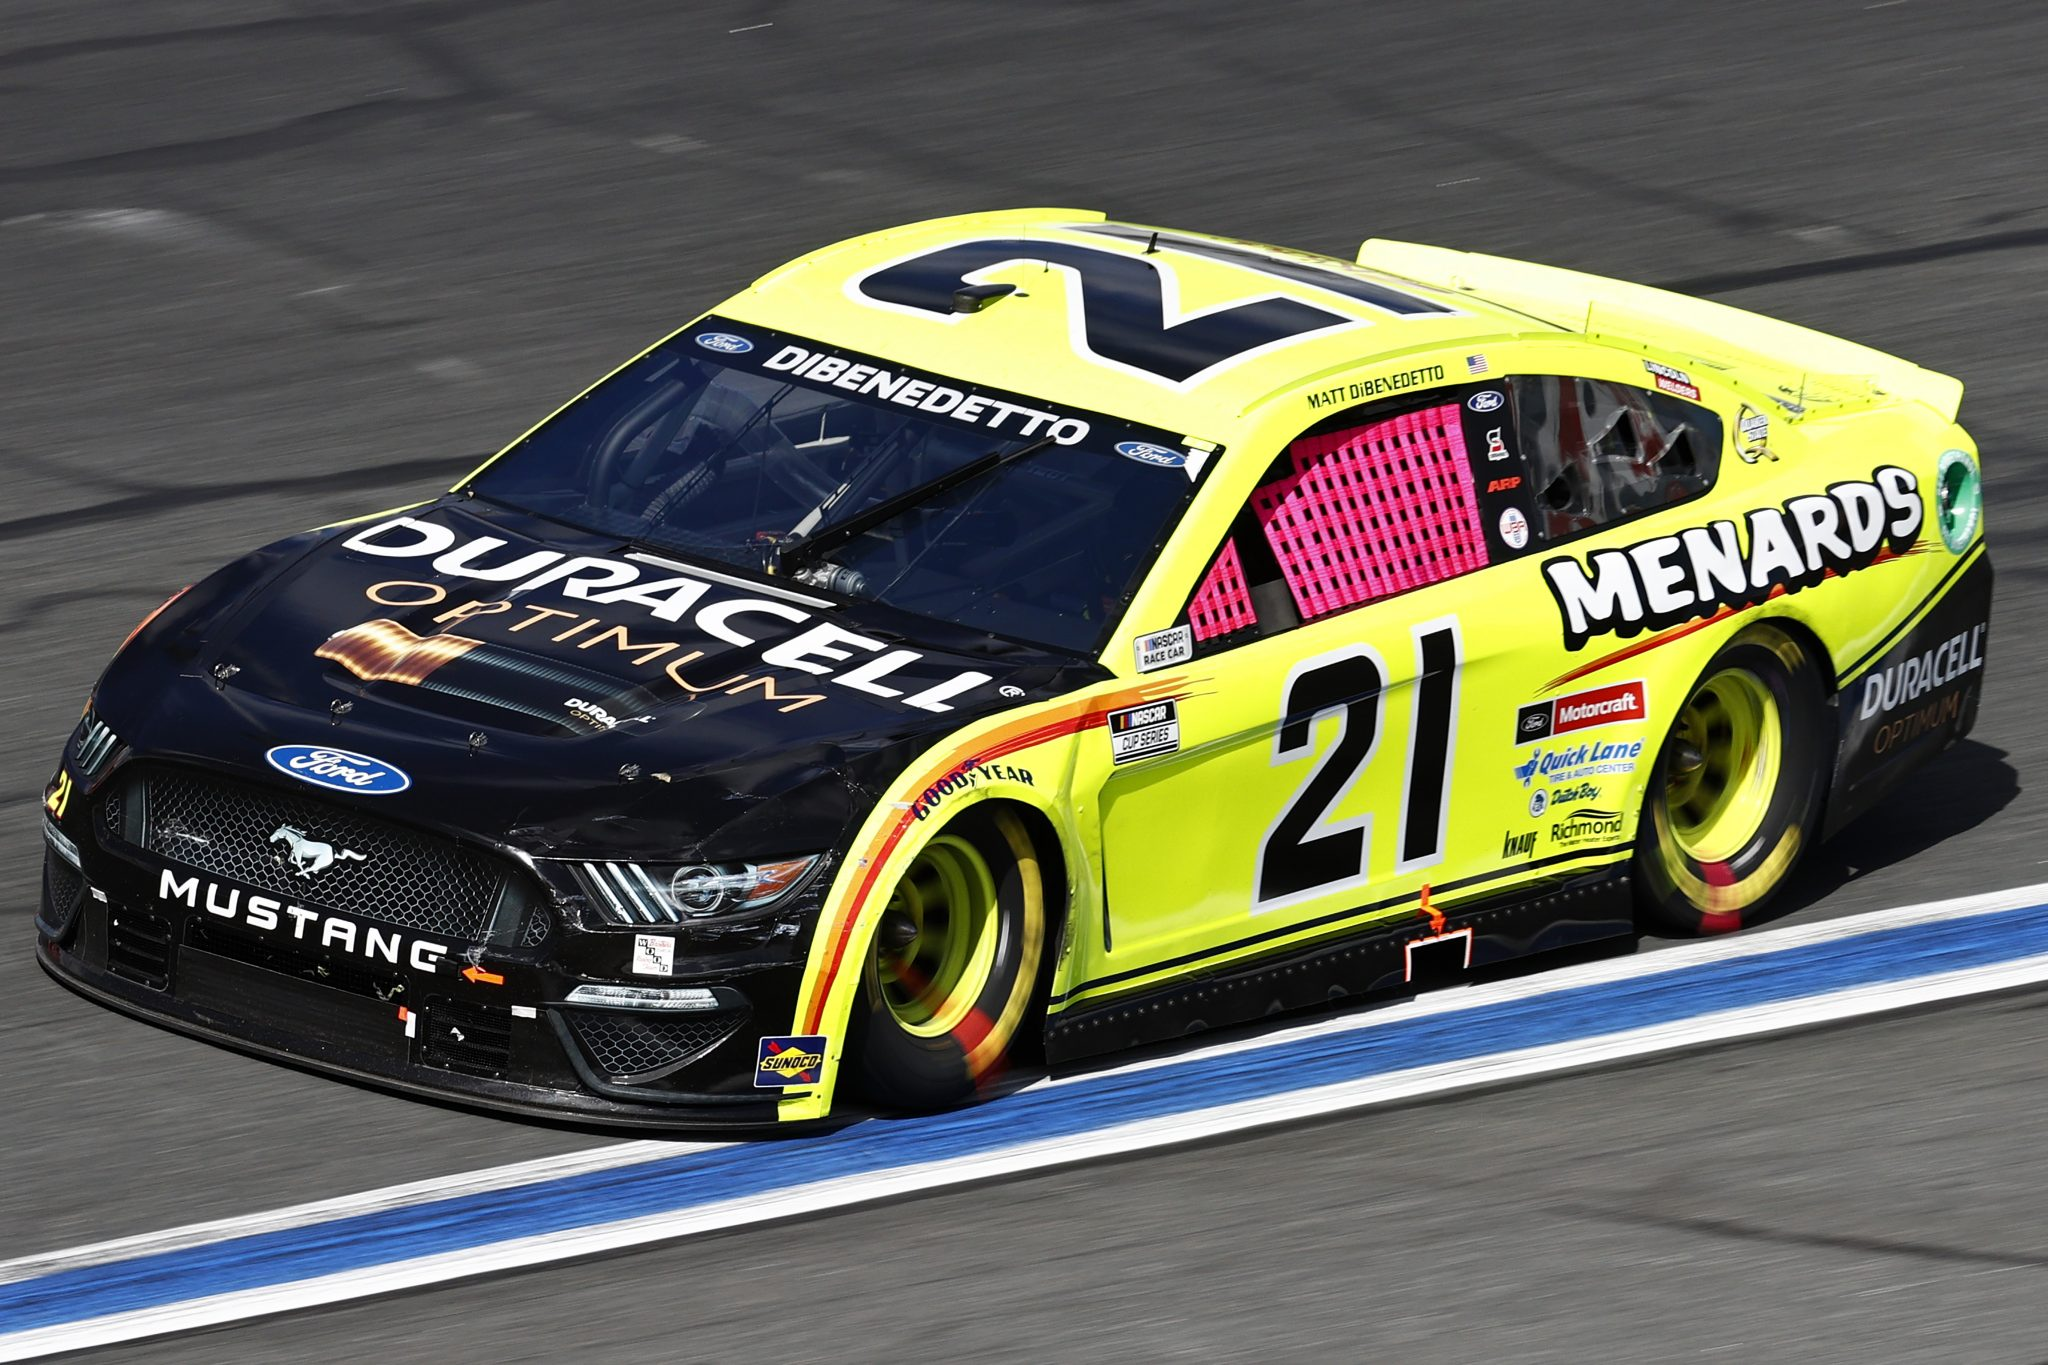 CONCORD, NORTH CAROLINA - OCTOBER 10: Matt DiBenedetto, driver of the #21 Menards/Duracell Ford, drives during the NASCAR Cup Series Bank of America ROVAL 400 at Charlotte Motor Speedway on October 10, 2021 in Concord, North Carolina. (Photo by Jared C. Tilton/Getty Images) | Getty Images